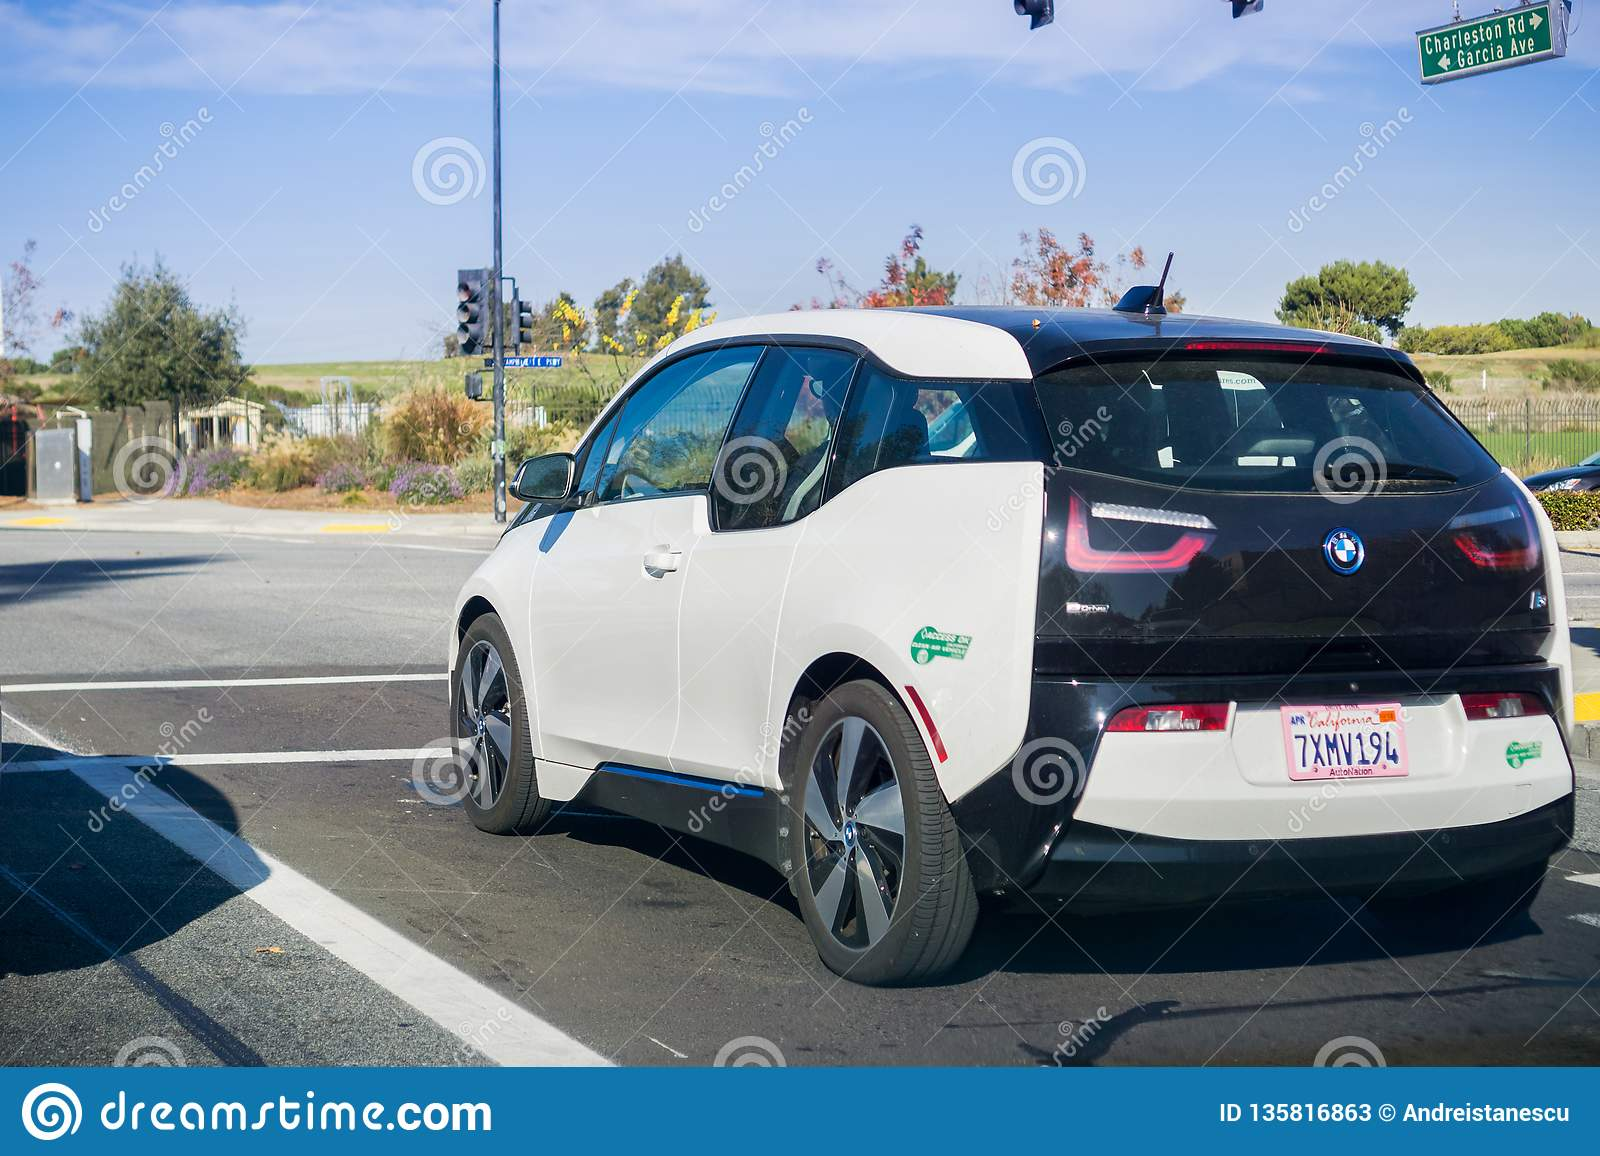 BMW Mountain View >> December 13 2017 Mountain View Ca Usa Bmw I3 Electric